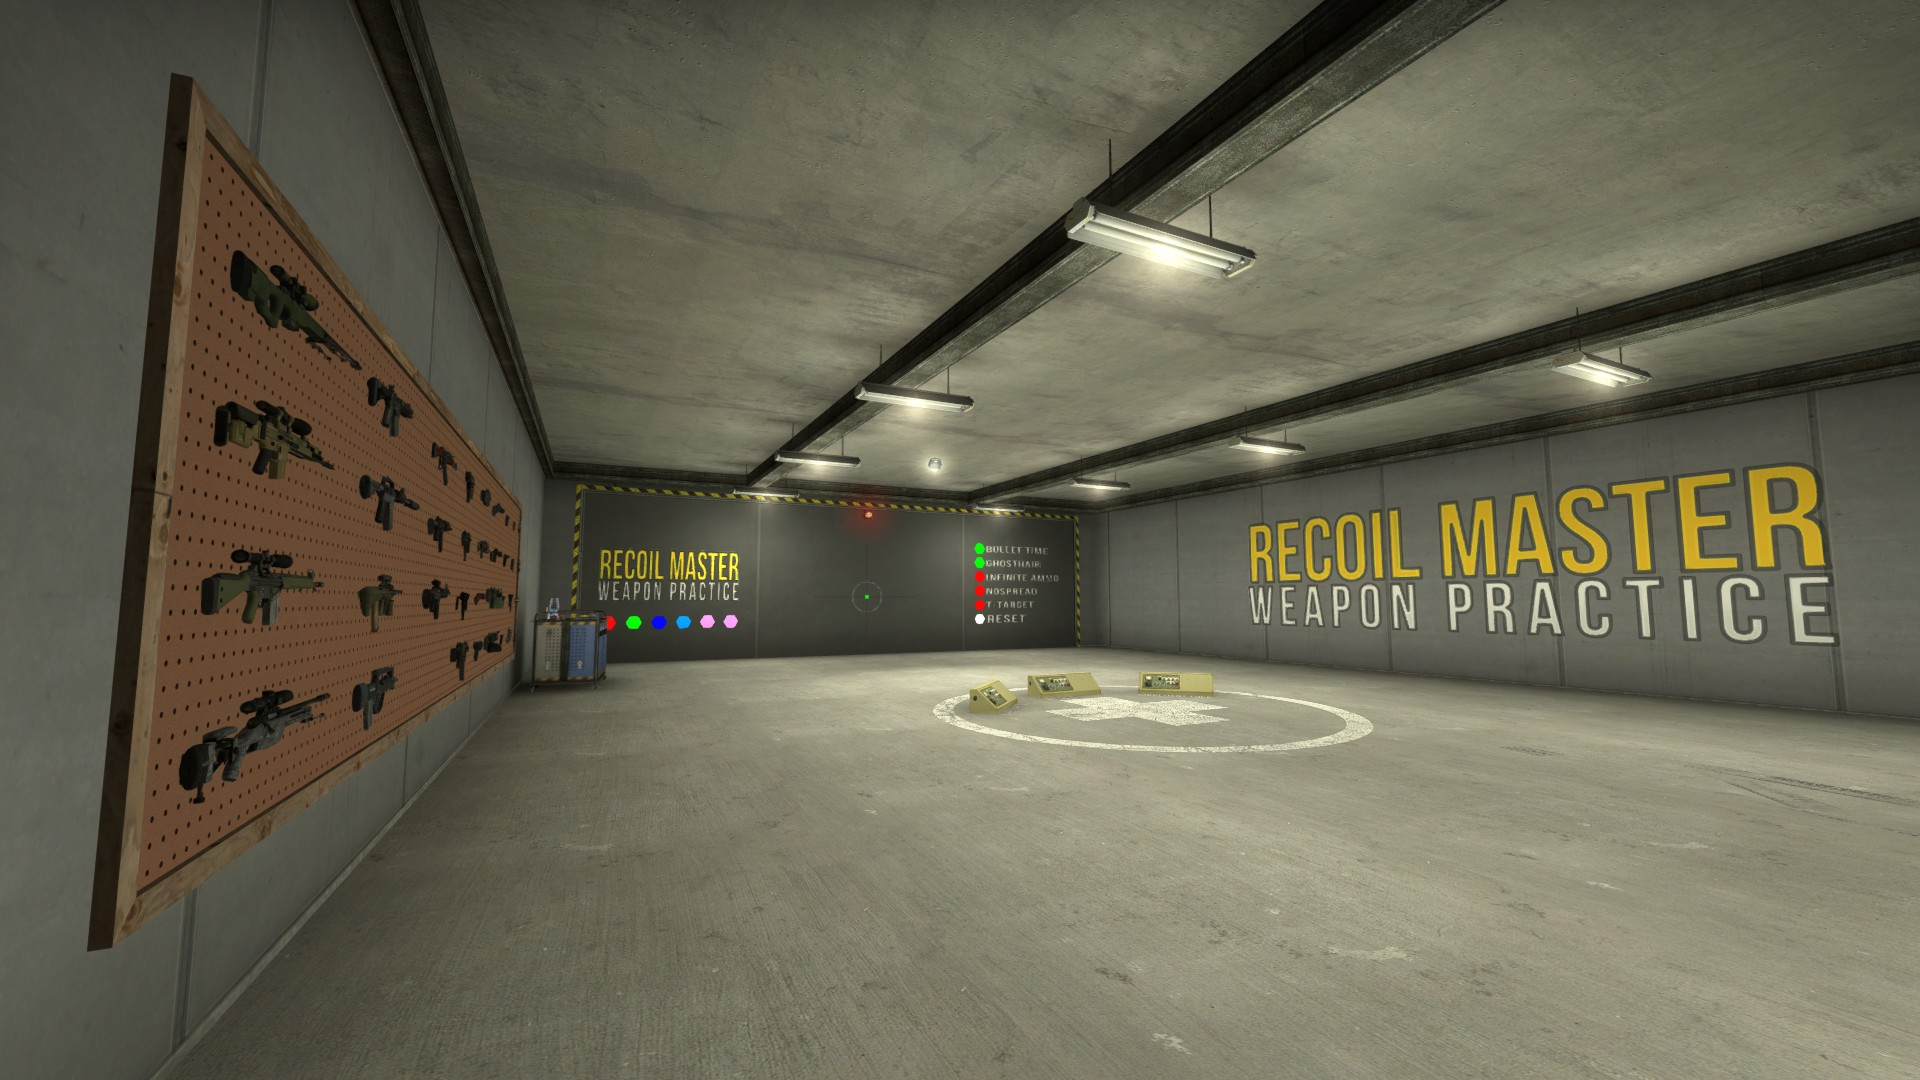 Recoil master weapon practice